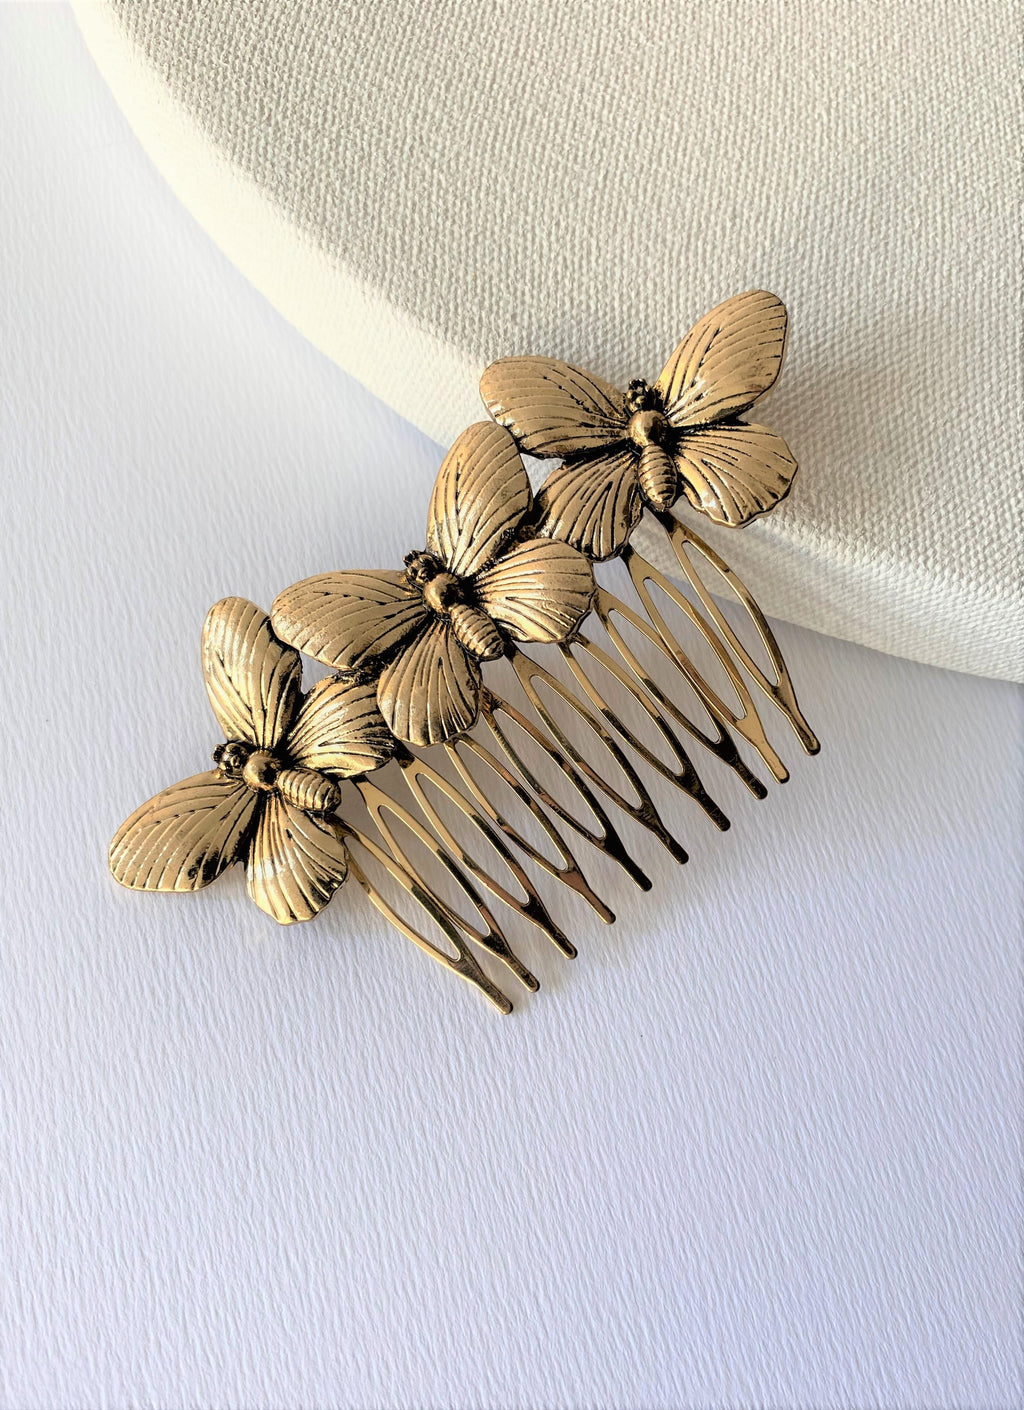 THE FANTASIA BUTTERFLY HAIR COMB